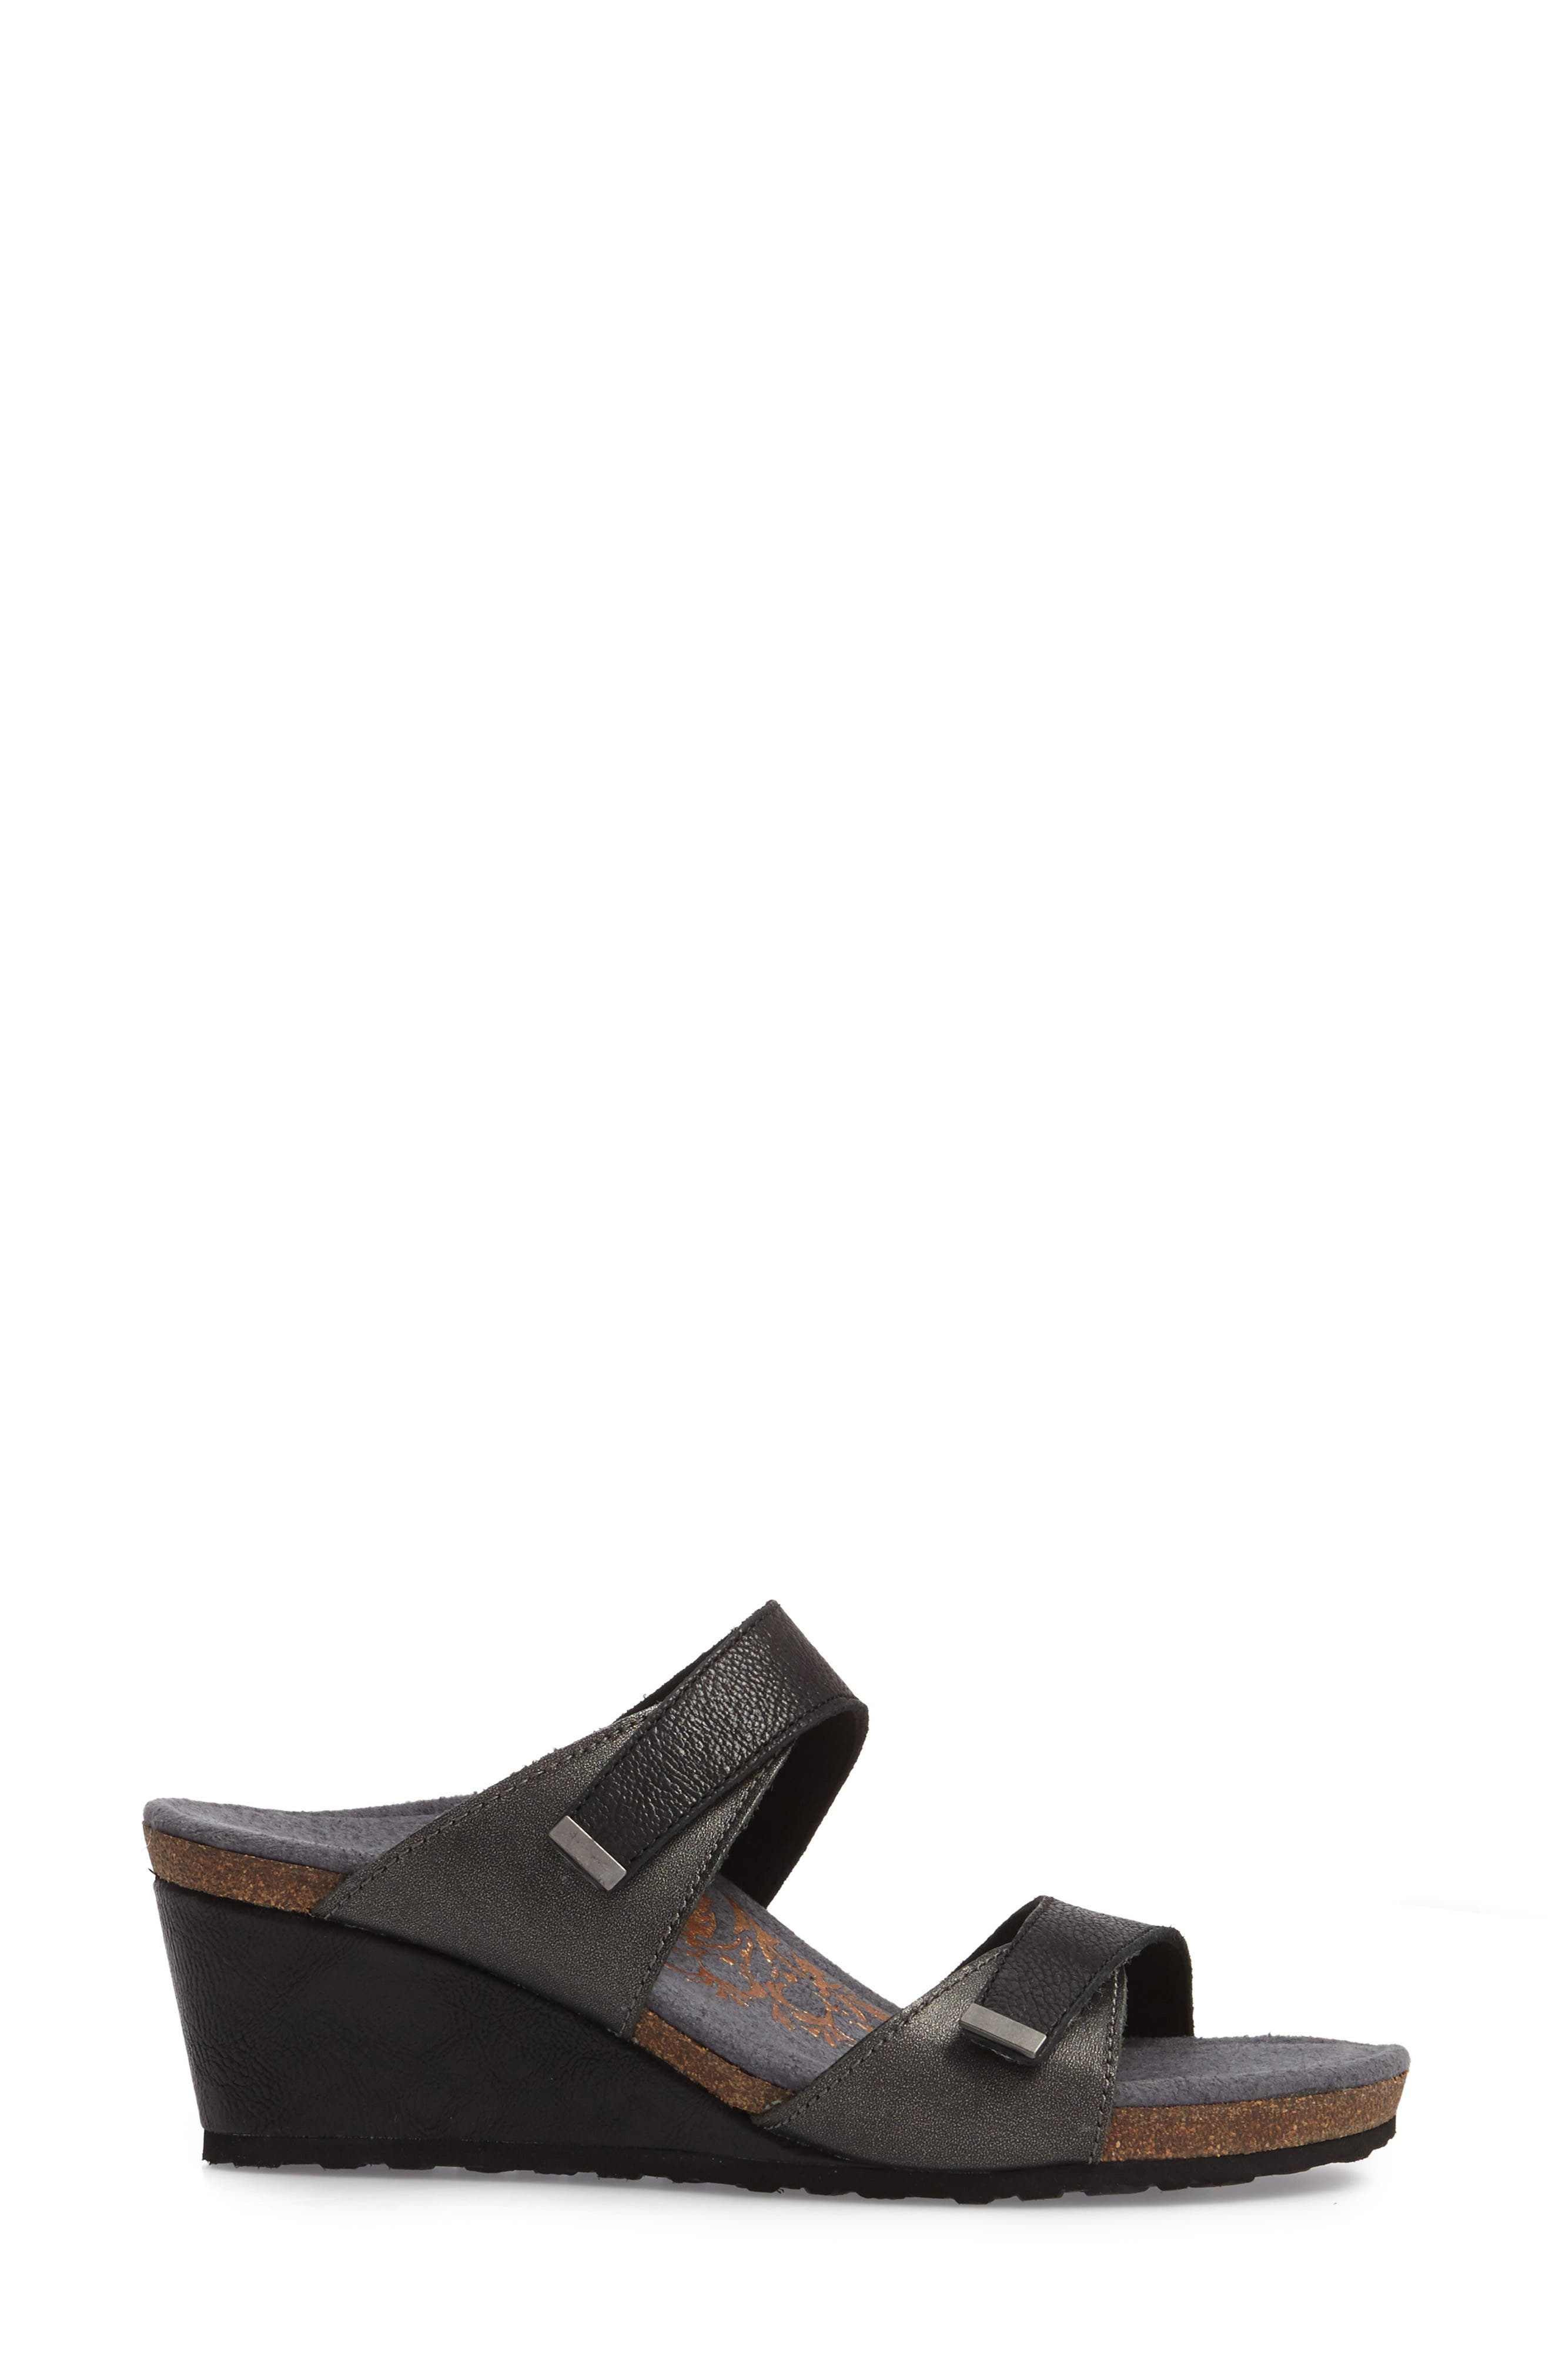 Chantel Wedge Sandal,                             Alternate thumbnail 3, color,                             Black Leather